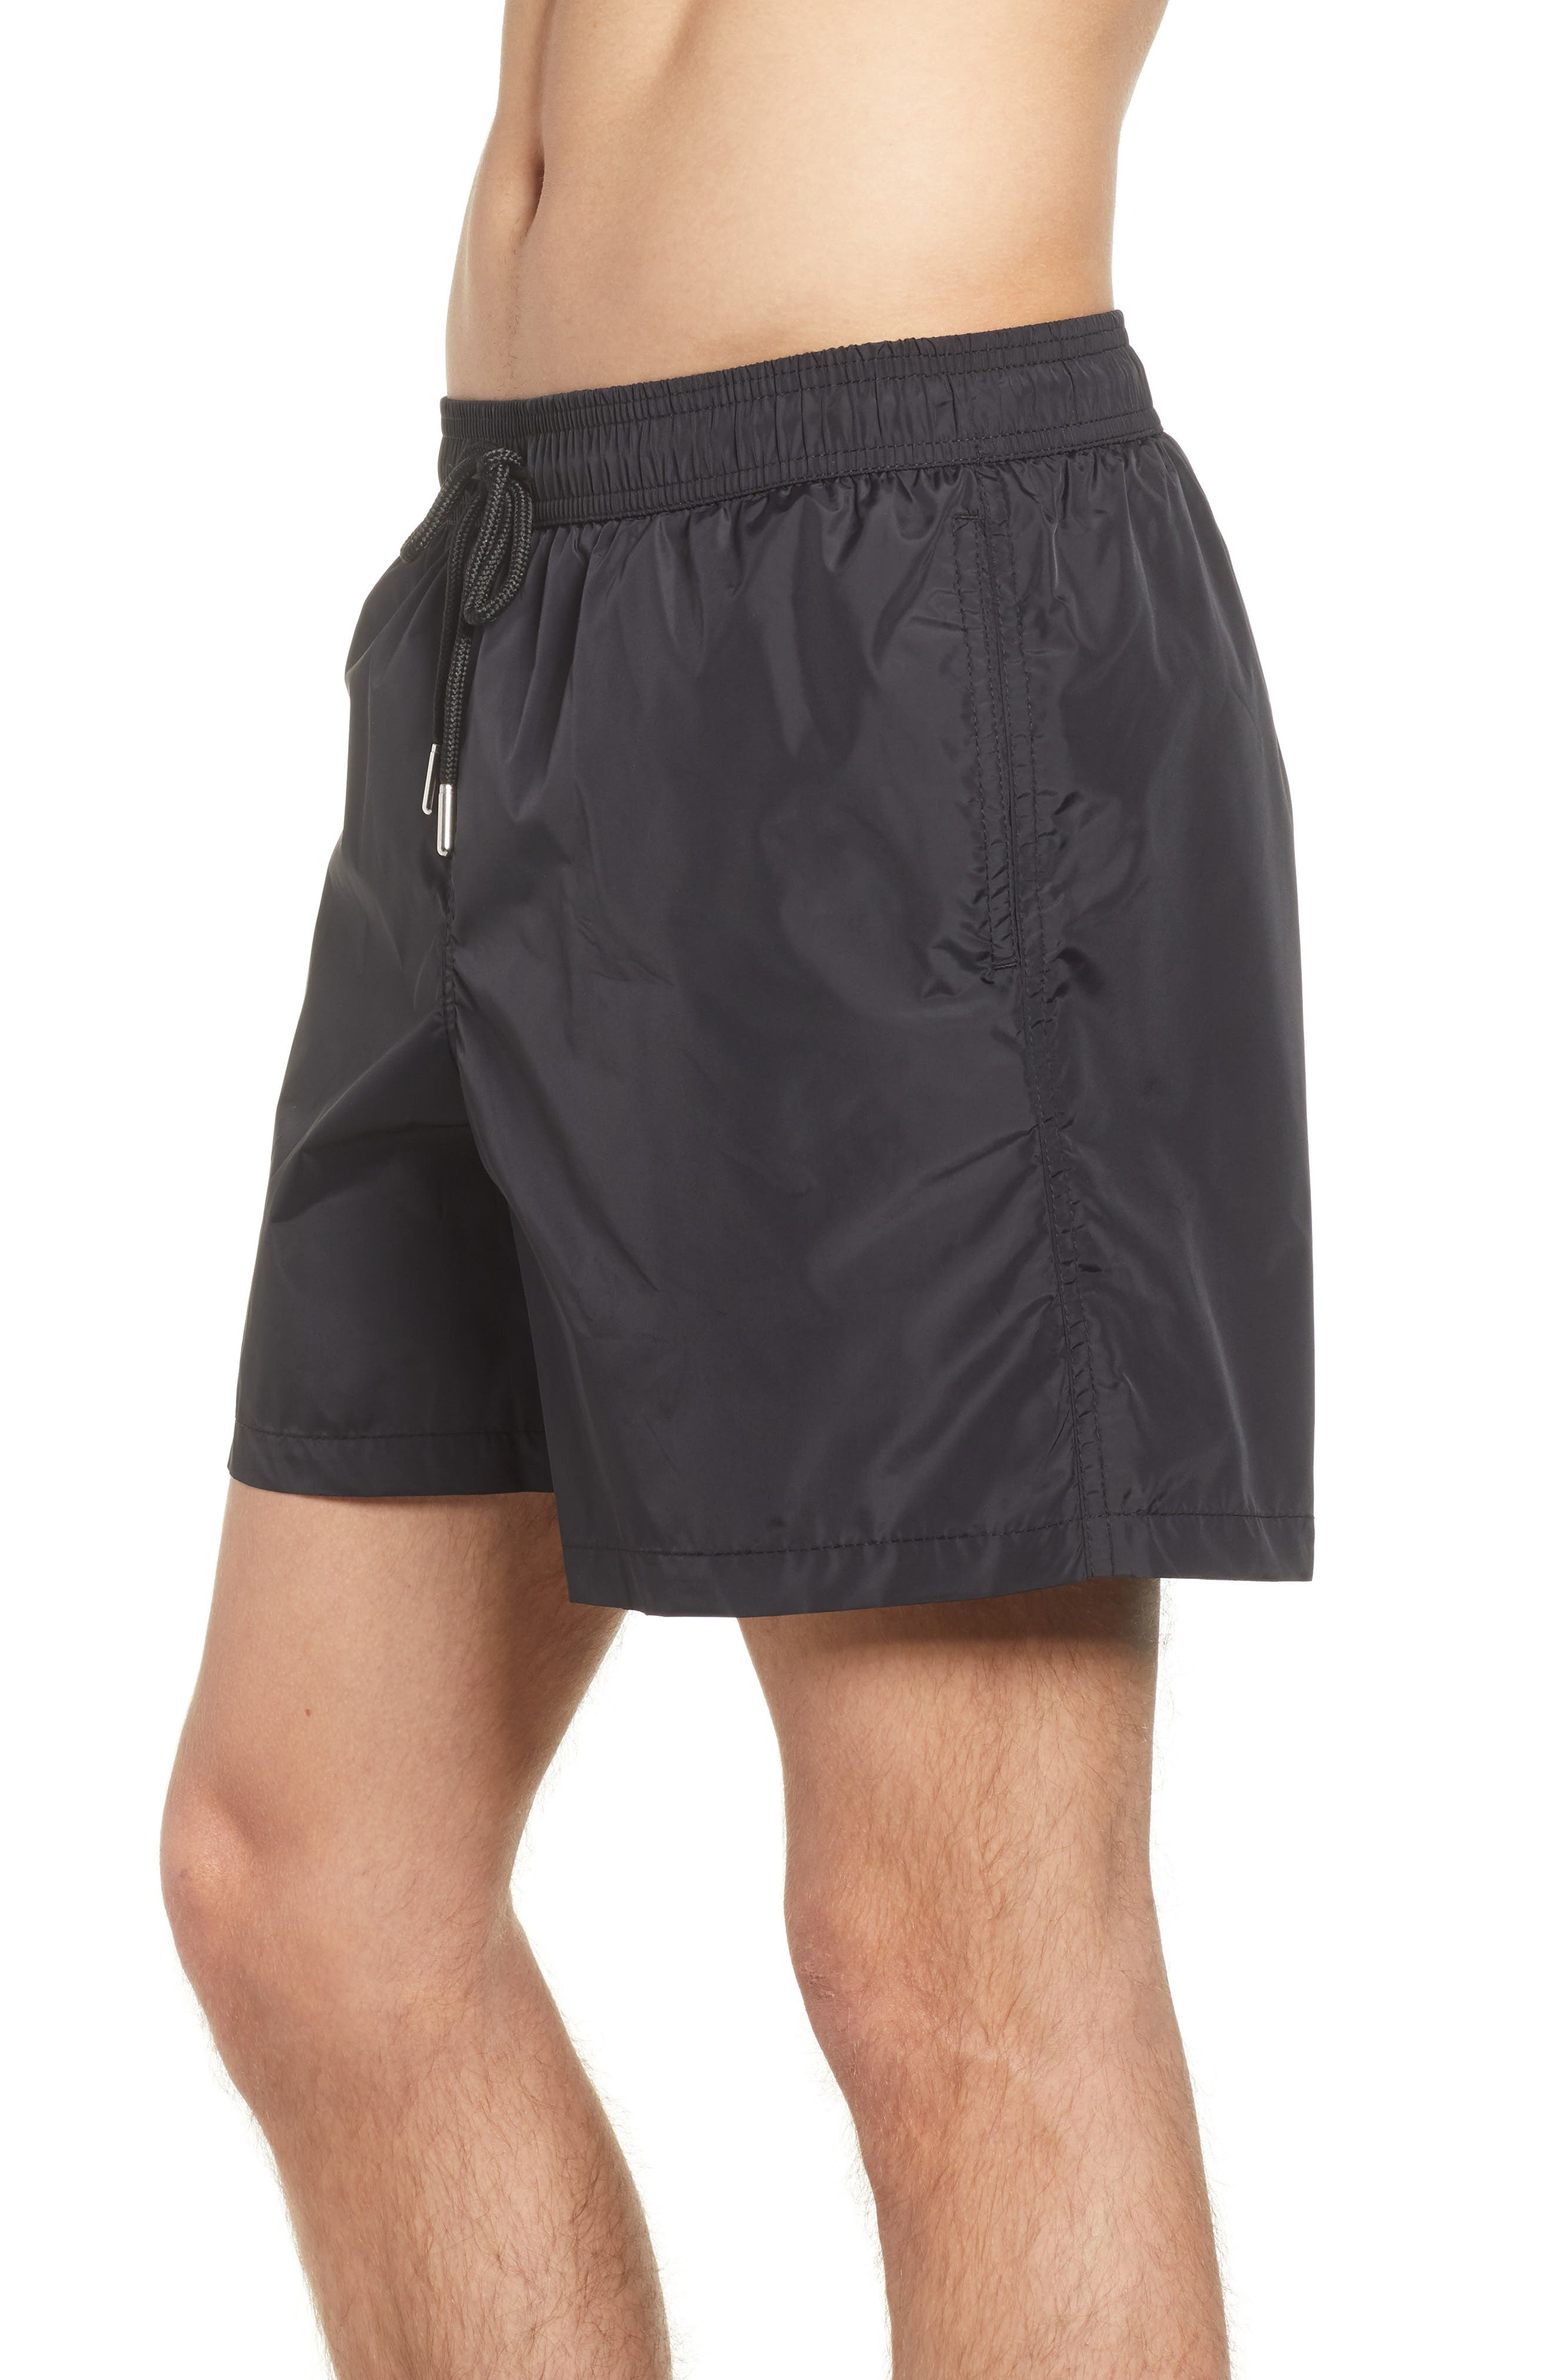 Swim Trunks,                             Alternate thumbnail 4, color,                             Black /Turquoise